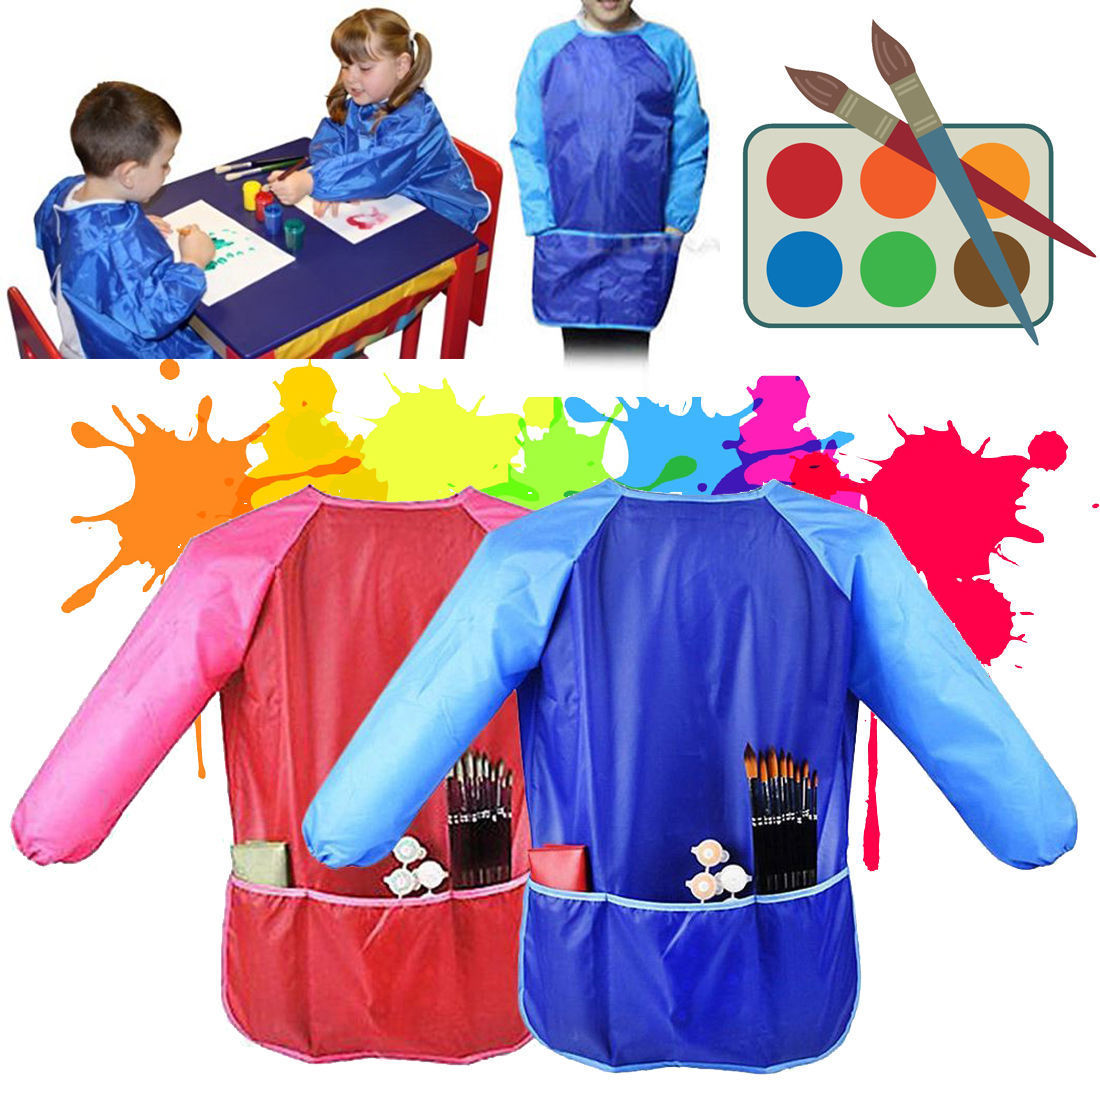 Childrens Jackets Arts & Crafts Apron Lights & Lighting Cooking Baking Painting Kids Apron Play-dough Complete Range Of Articles